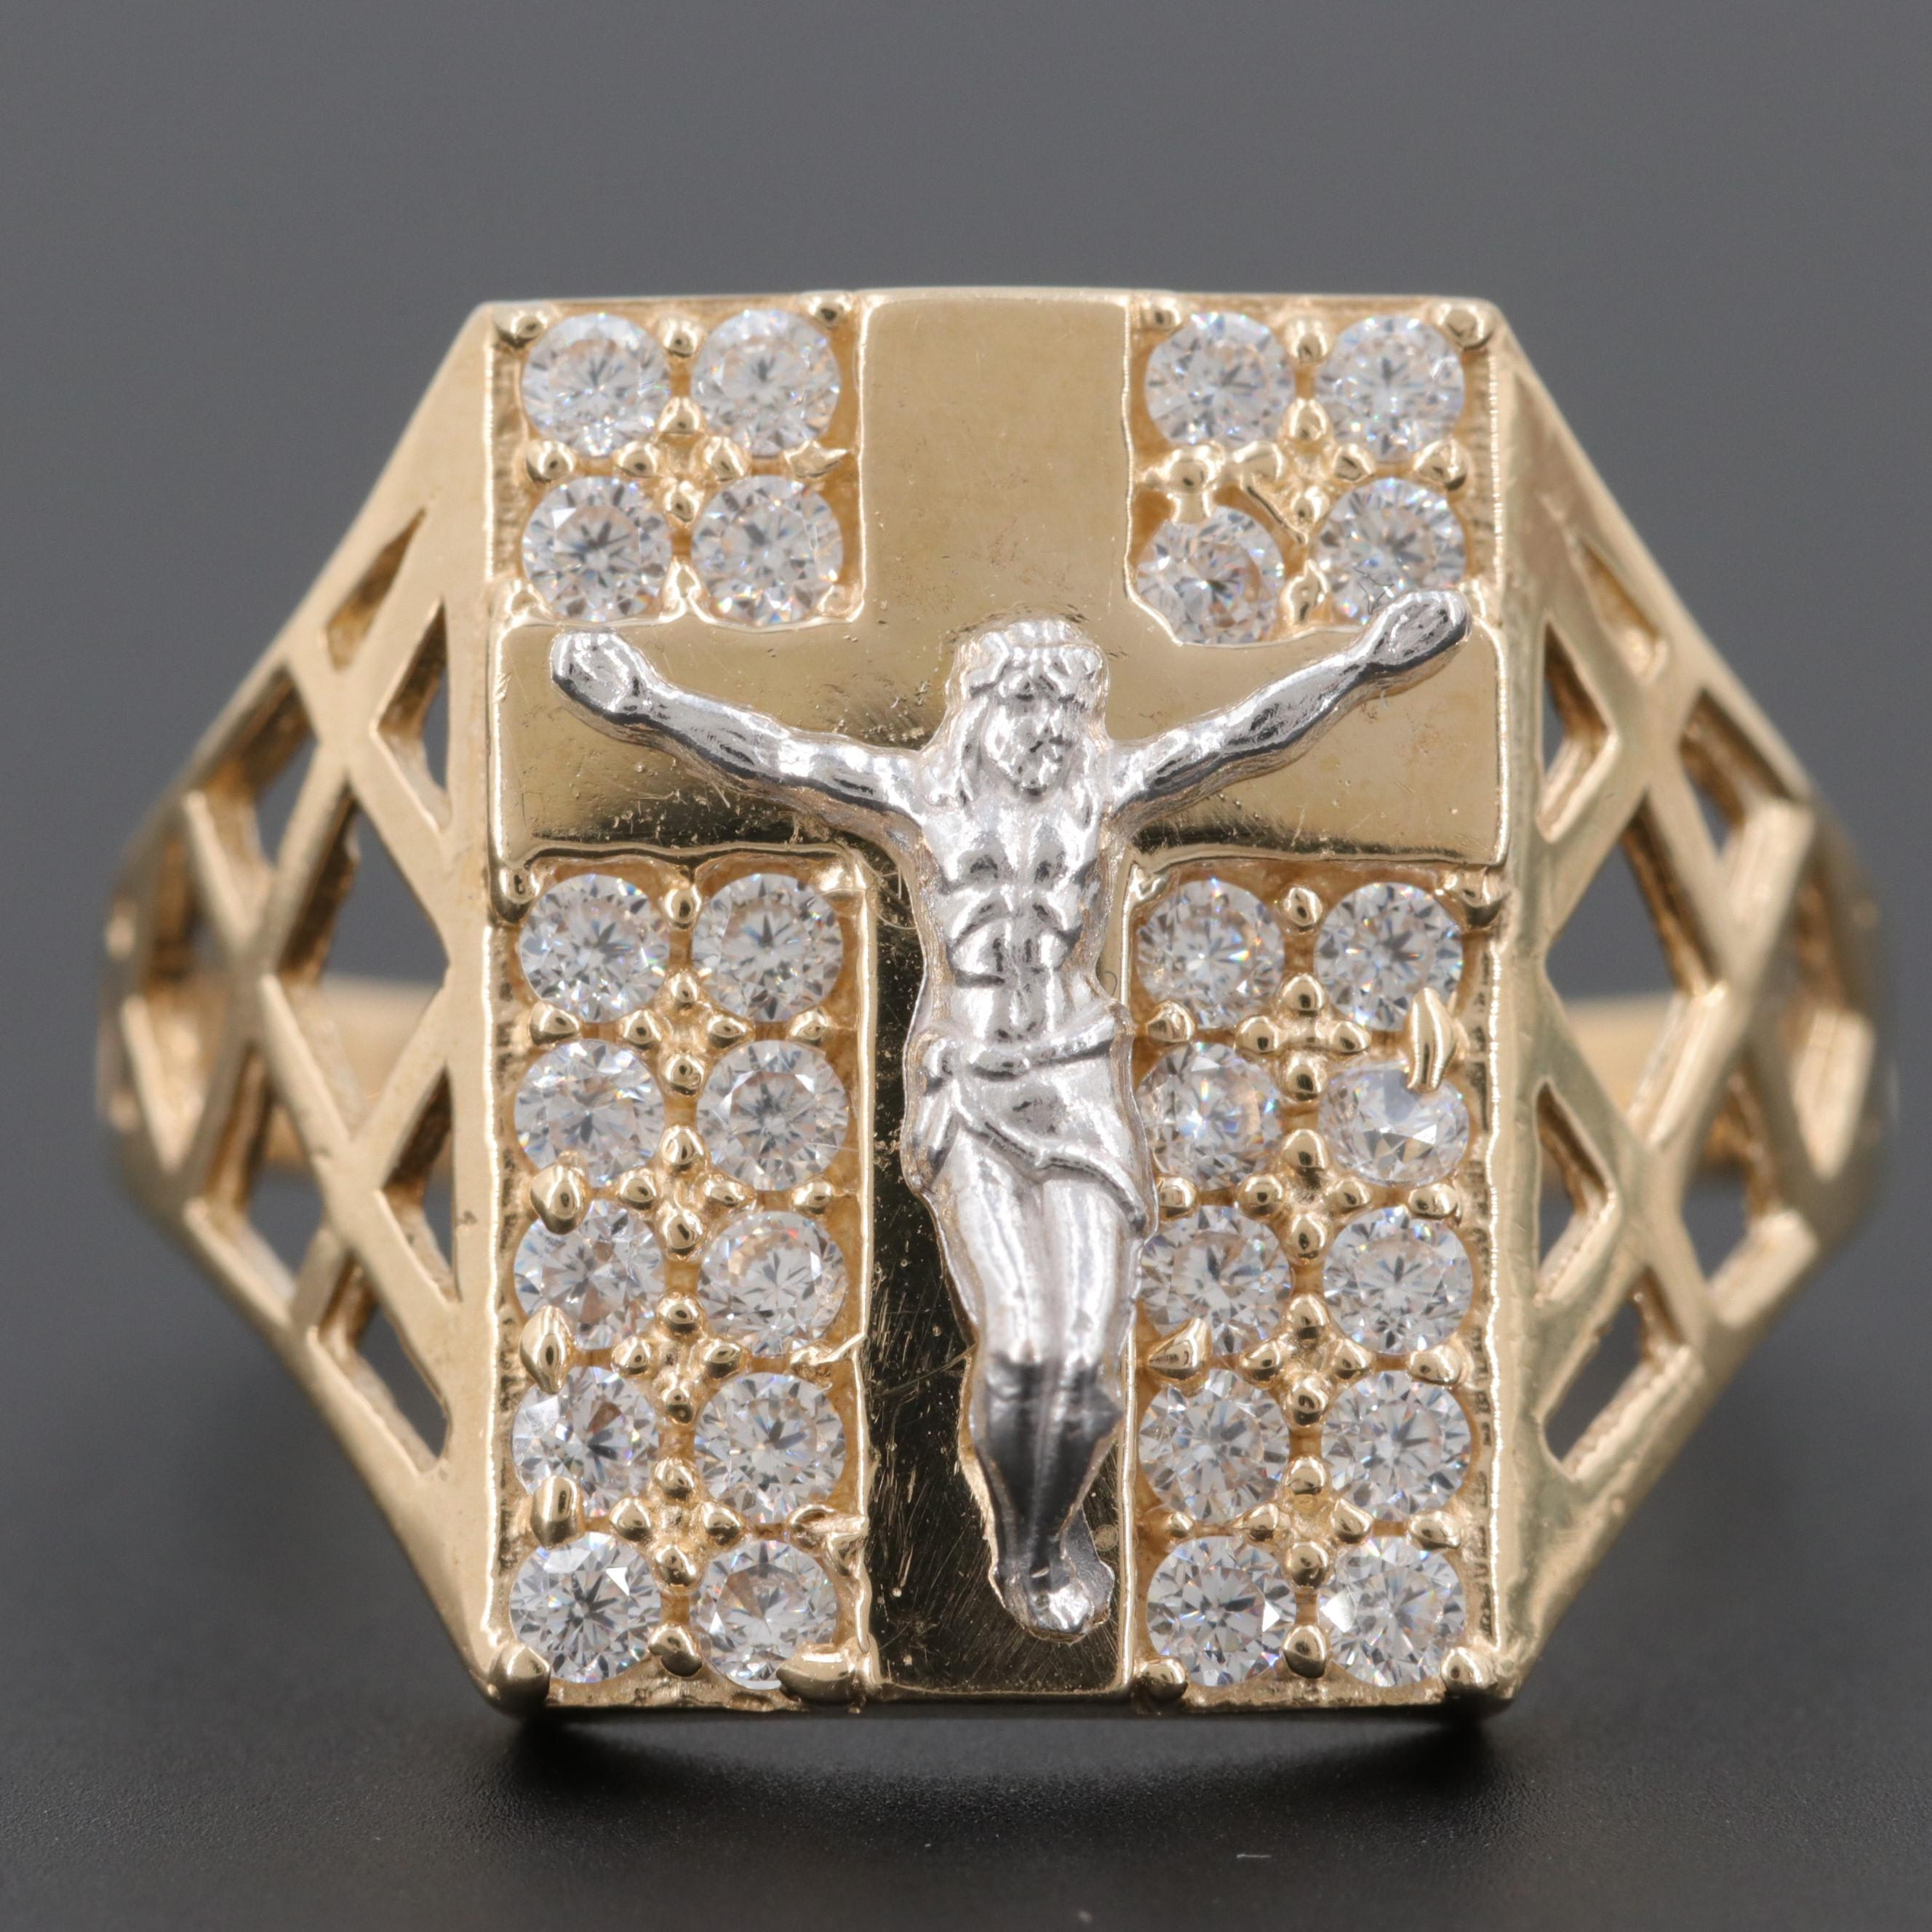 14K Yellow Gold Cubic Zirconia Crucifix Ring with White Gold Accents